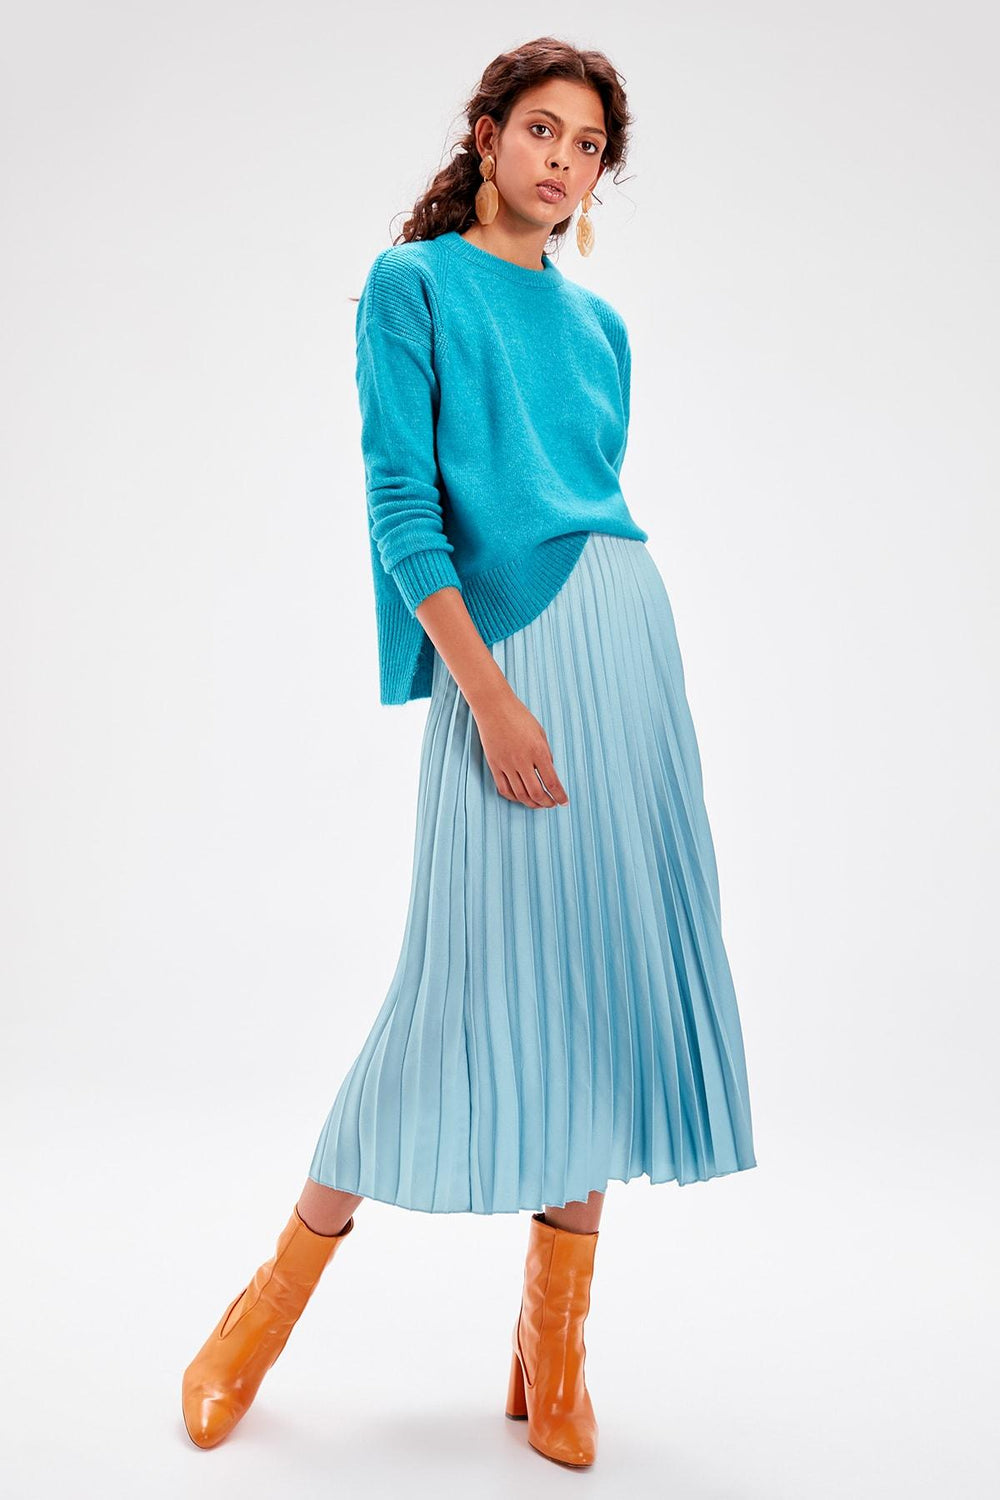 Turquoise Basic Sweater - Top Maxy